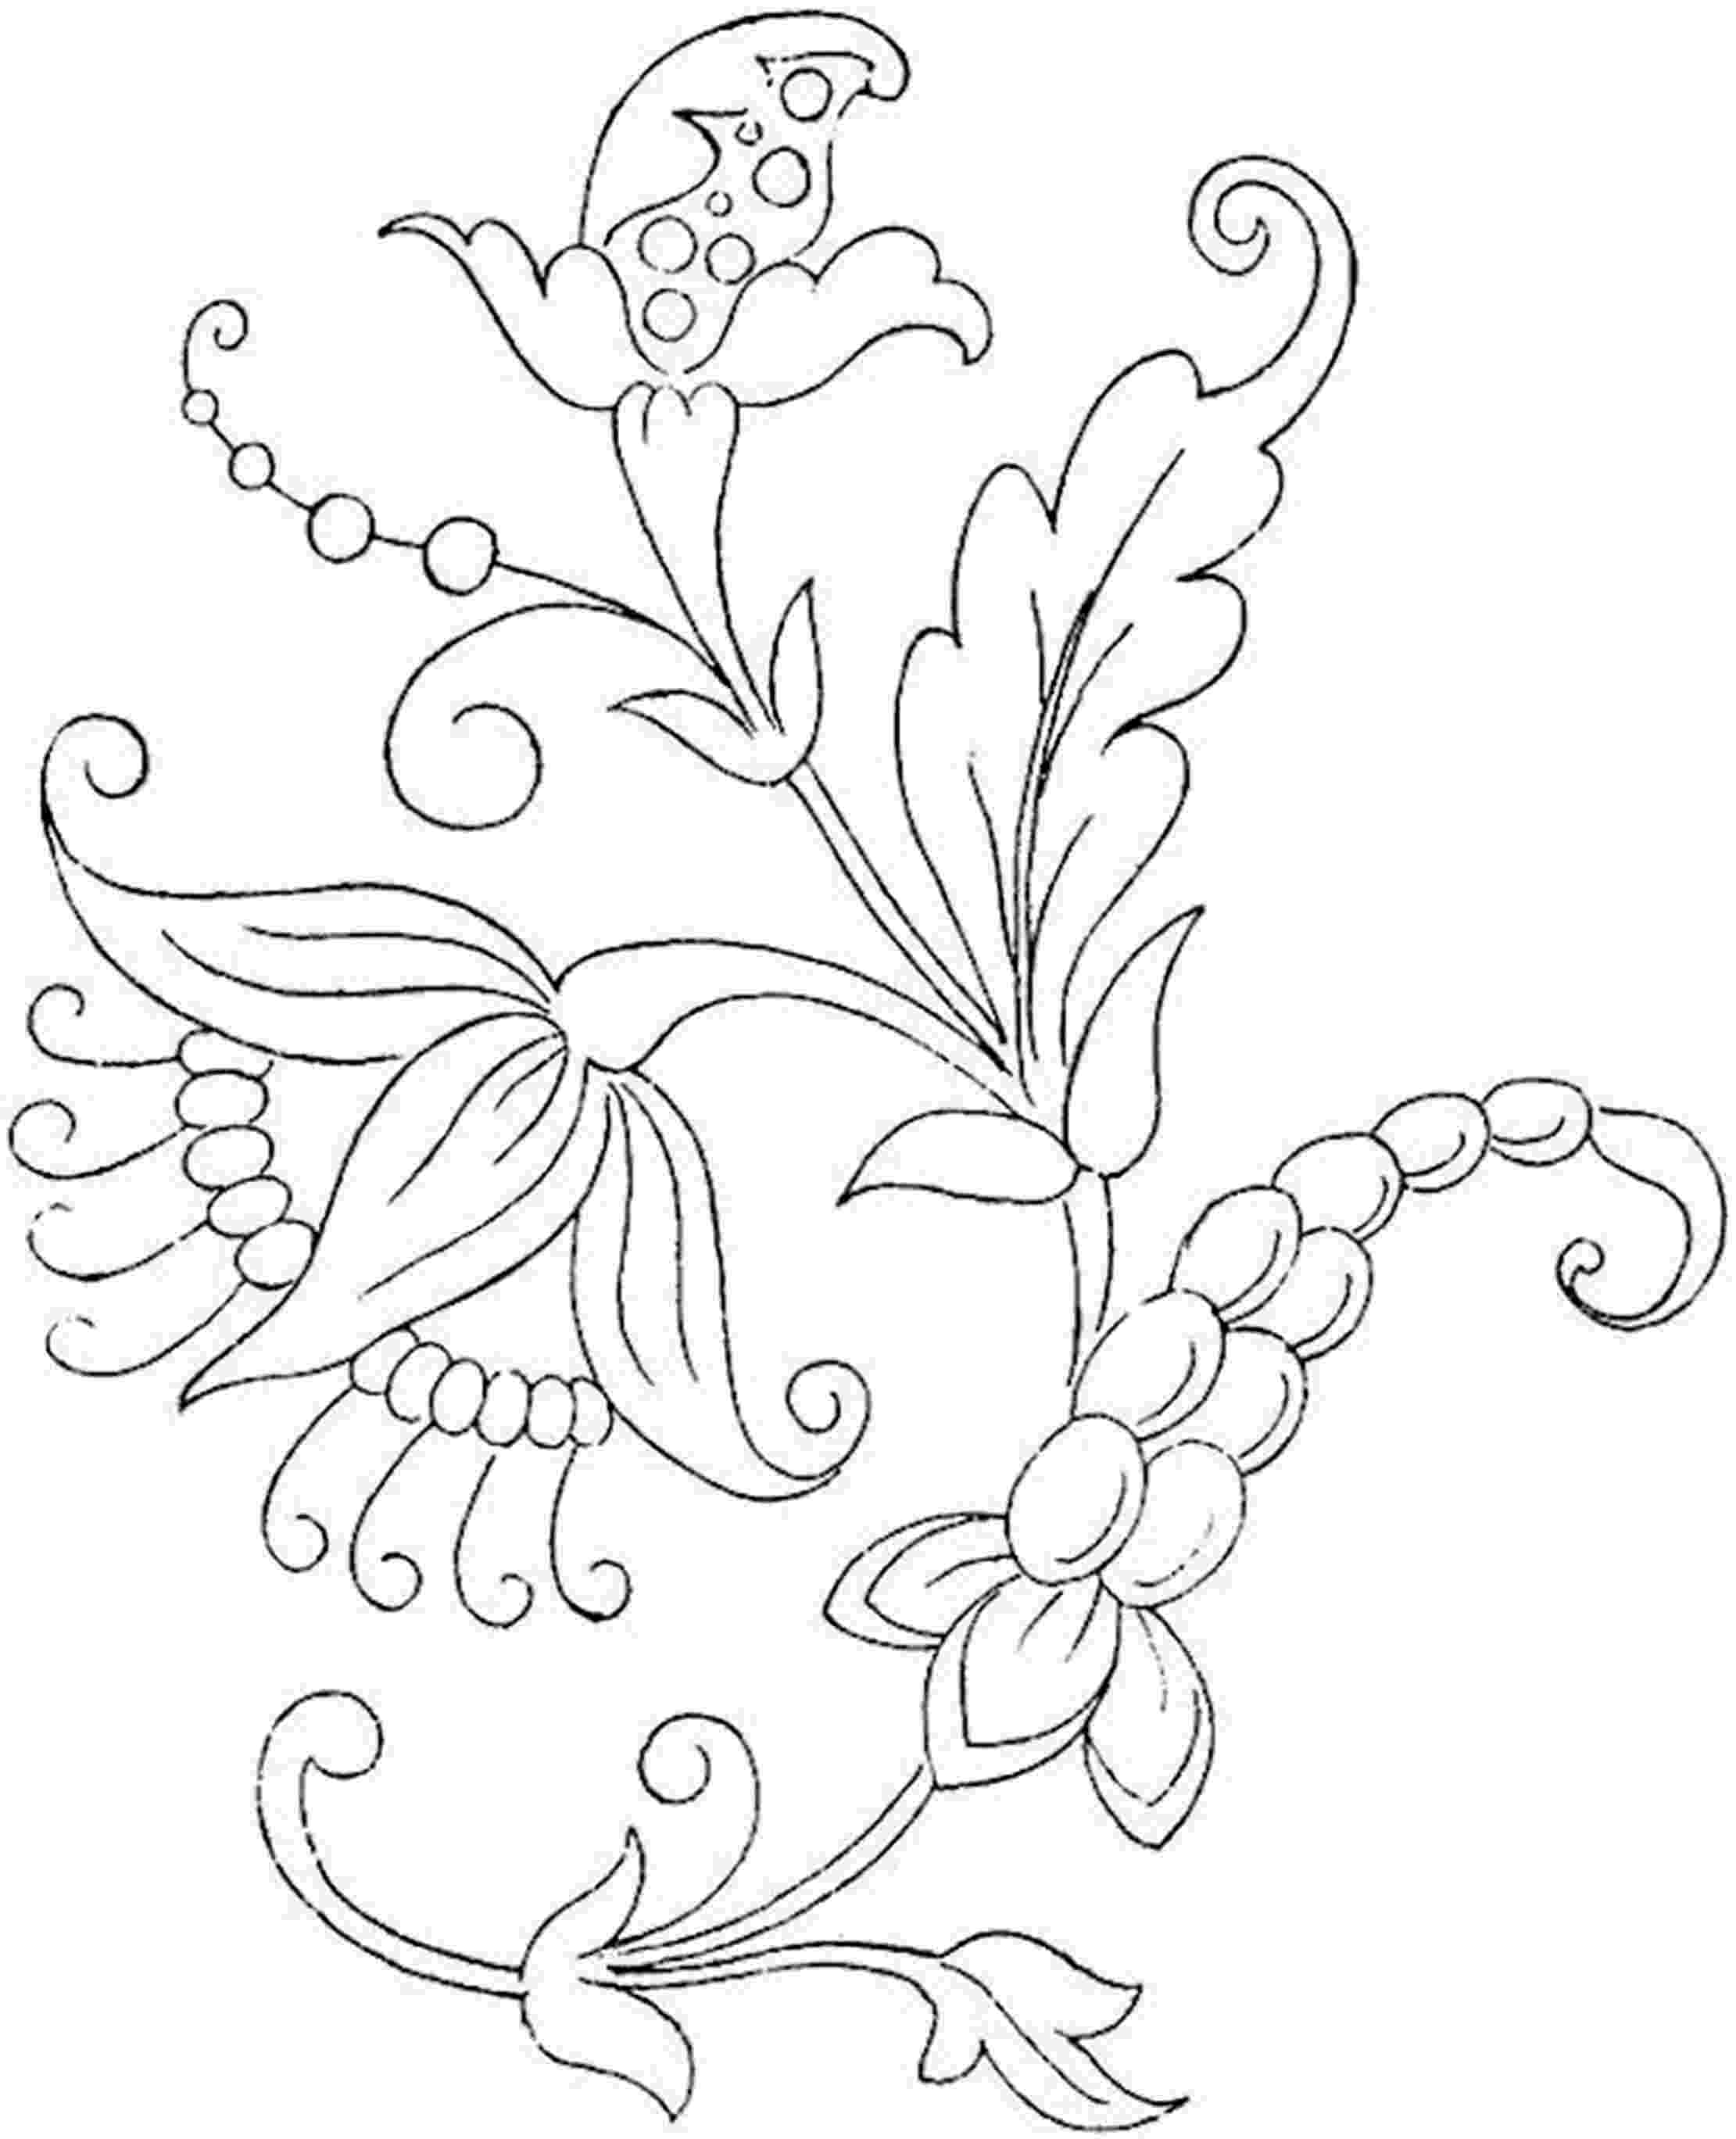 flowers colouring 10 flower coloring sheets for girls and boys all esl flowers colouring